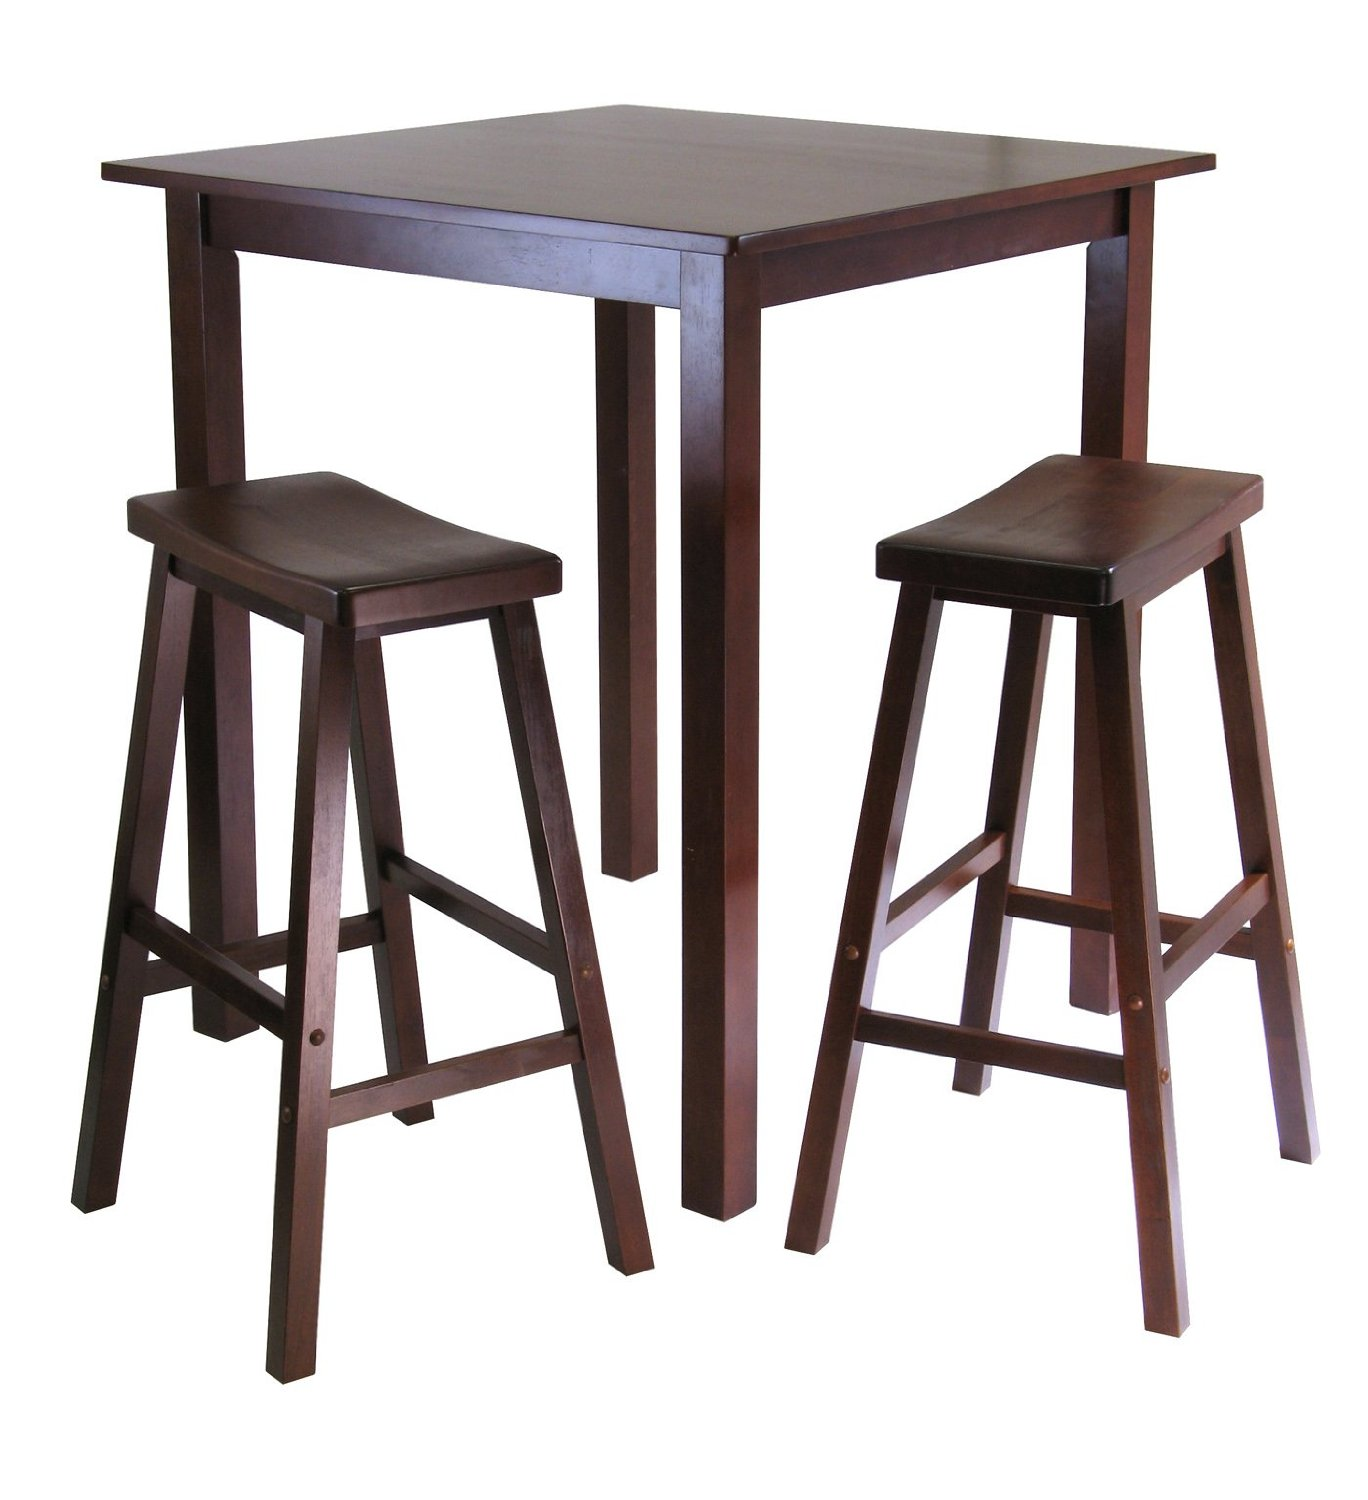 Image of: high kitchen table and stools